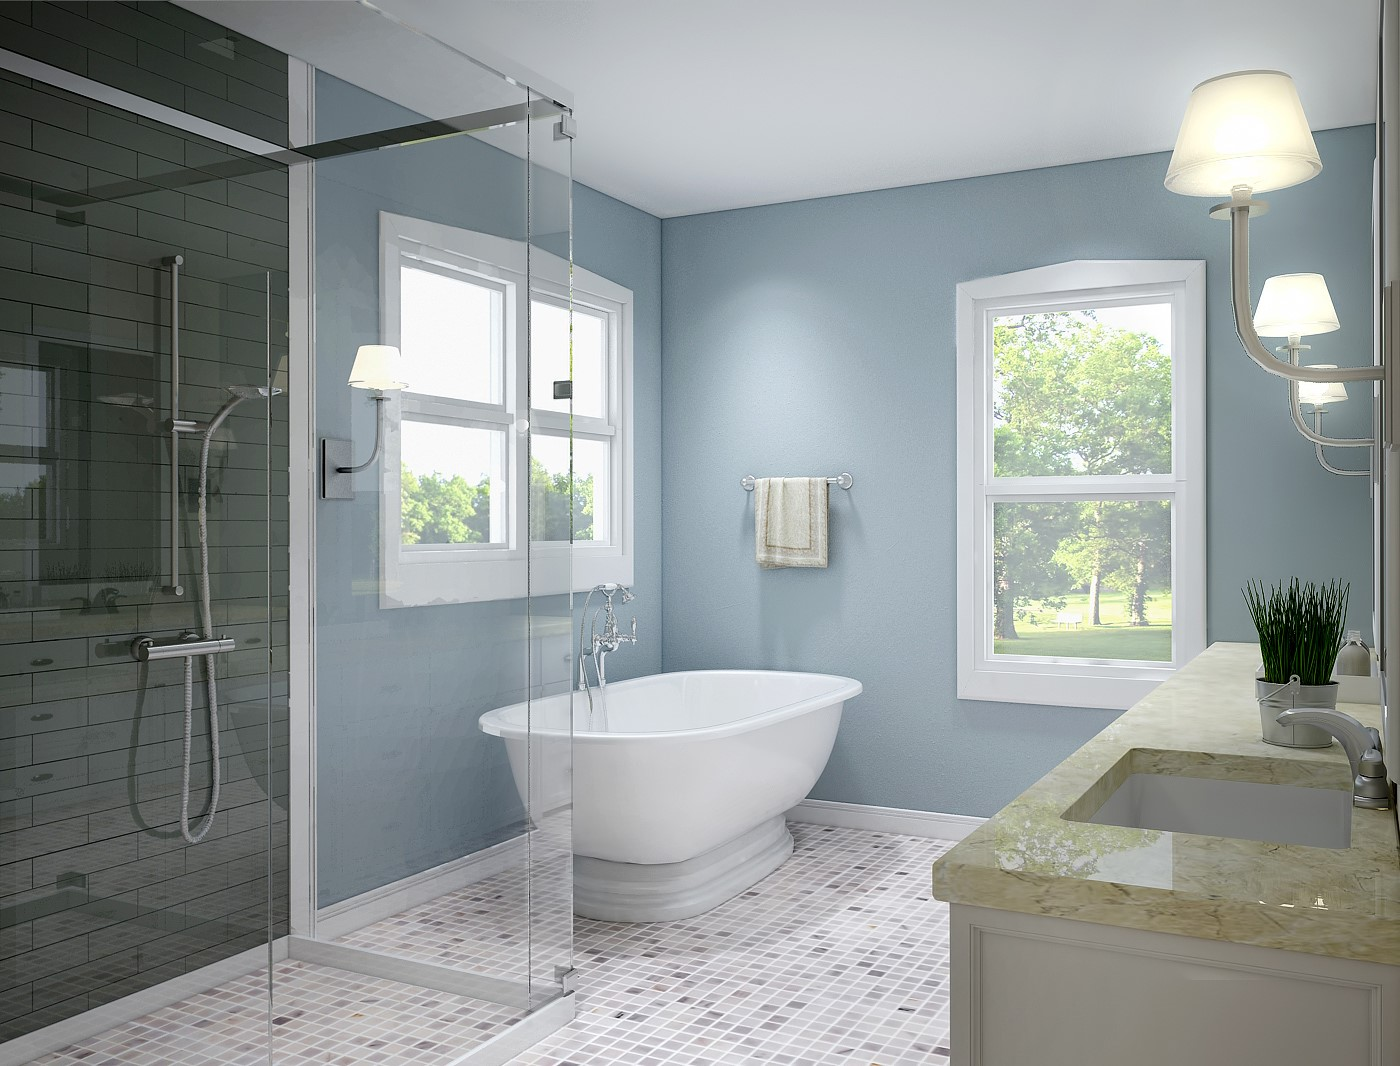 Periwinkle | 10 Best and Worst Colors for Your Bathroom | Her Beauty